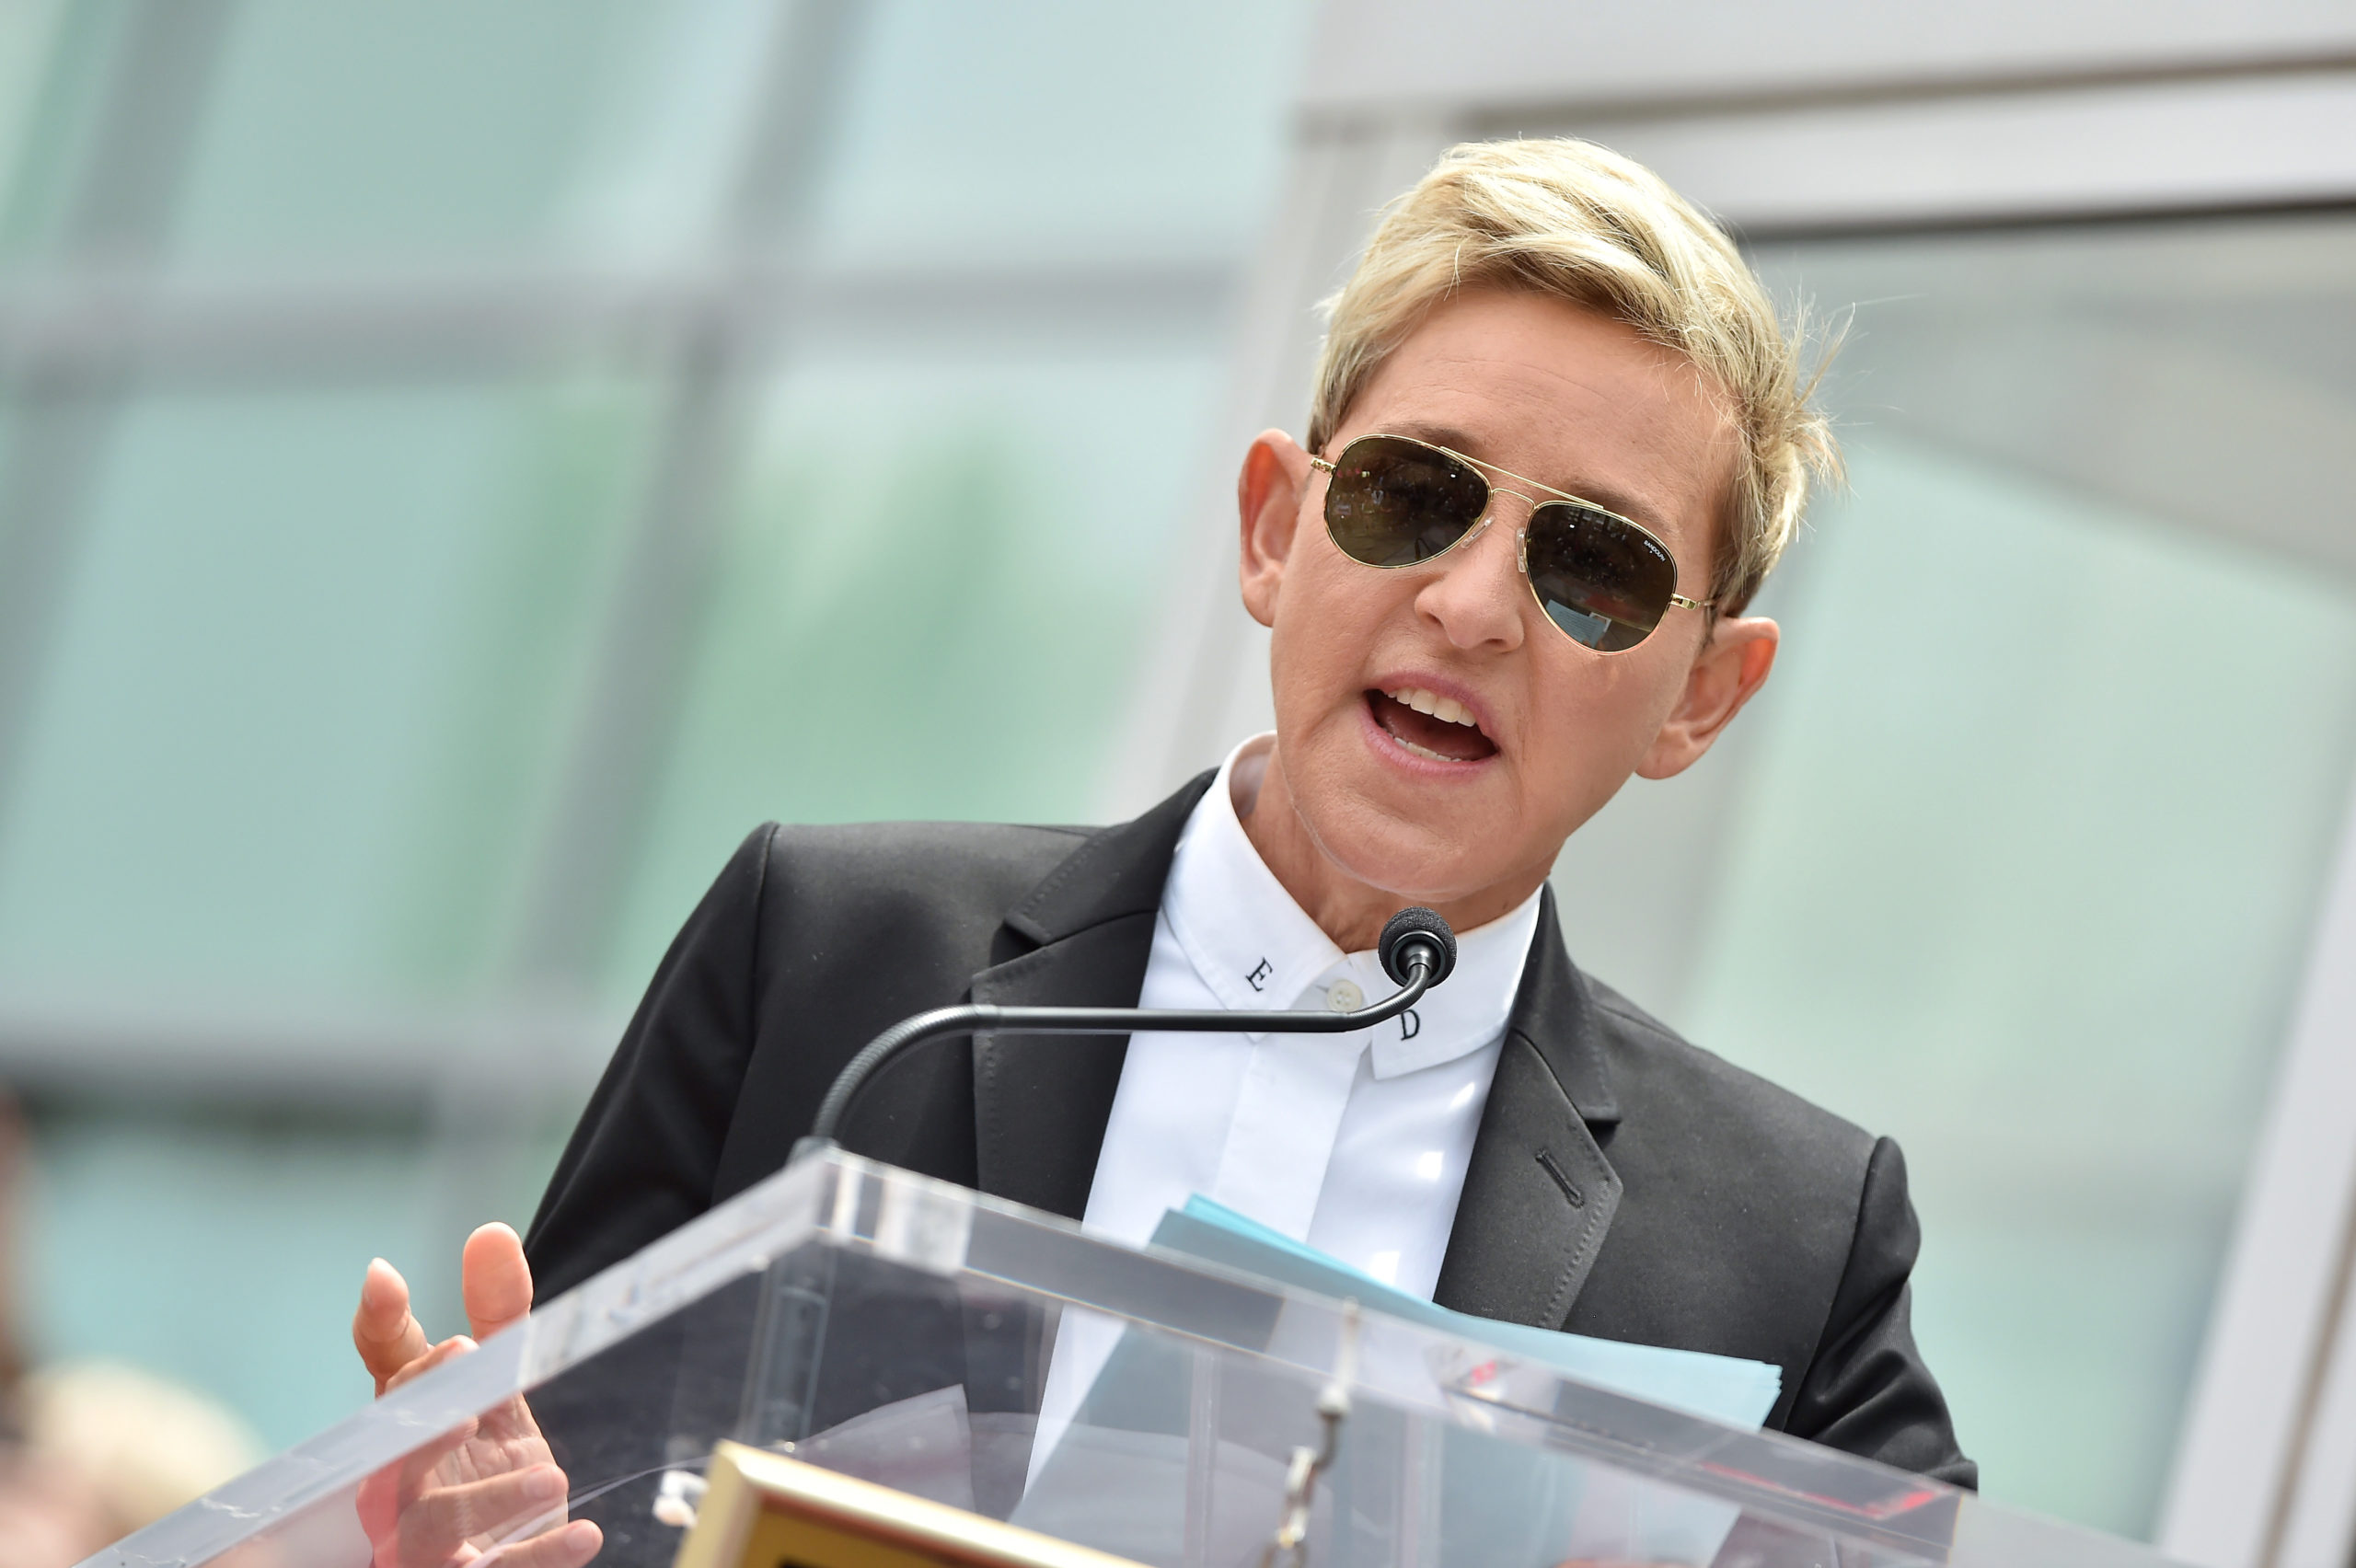 Ellen DeGeneres' ratings are plummeting while the embattled star frantically tries to repair her reputation